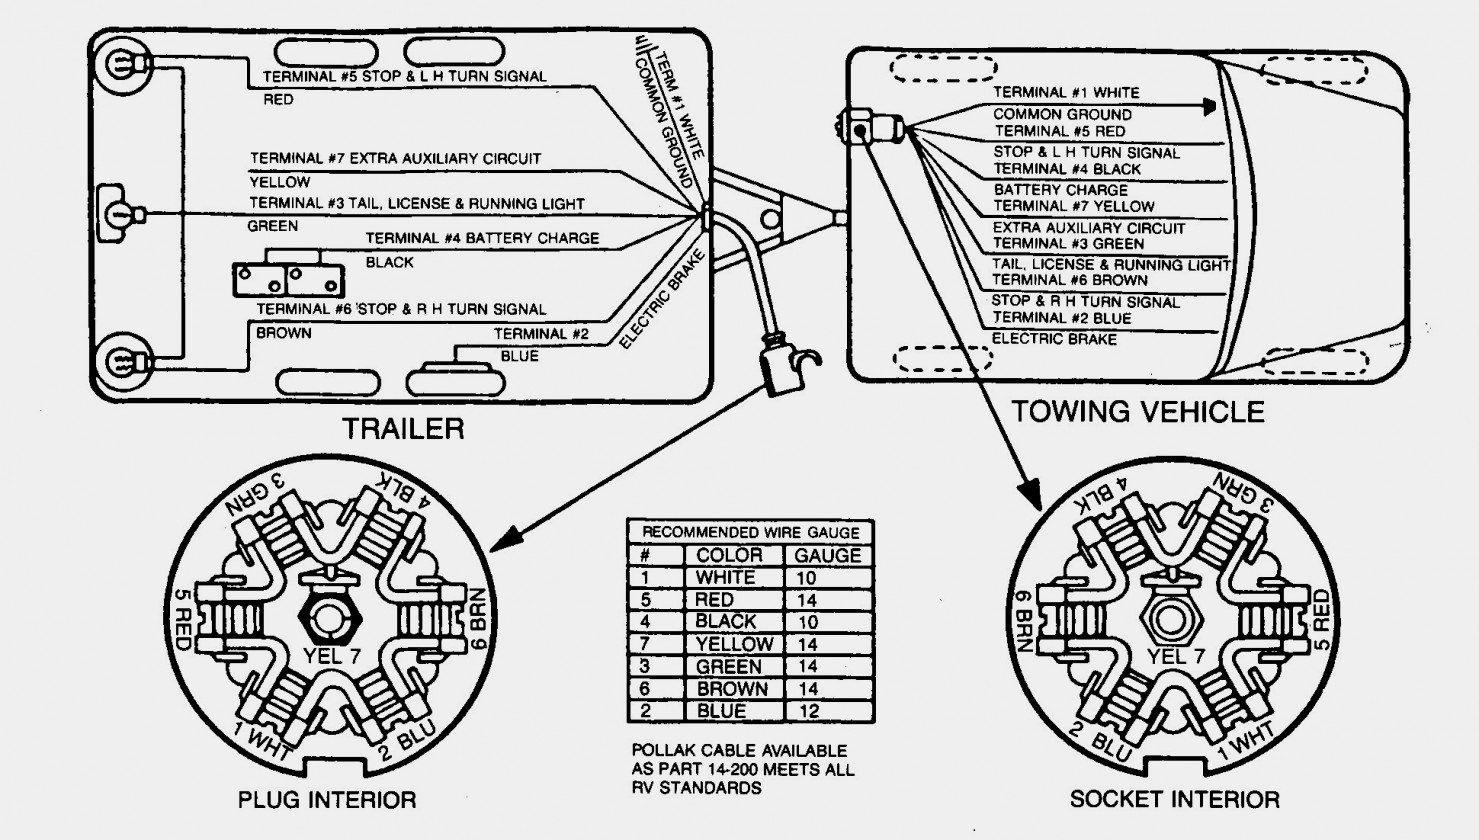 Big Tex Wiring - Wiring Diagrams Click - Wiring Diagram For Big Tex Trailer